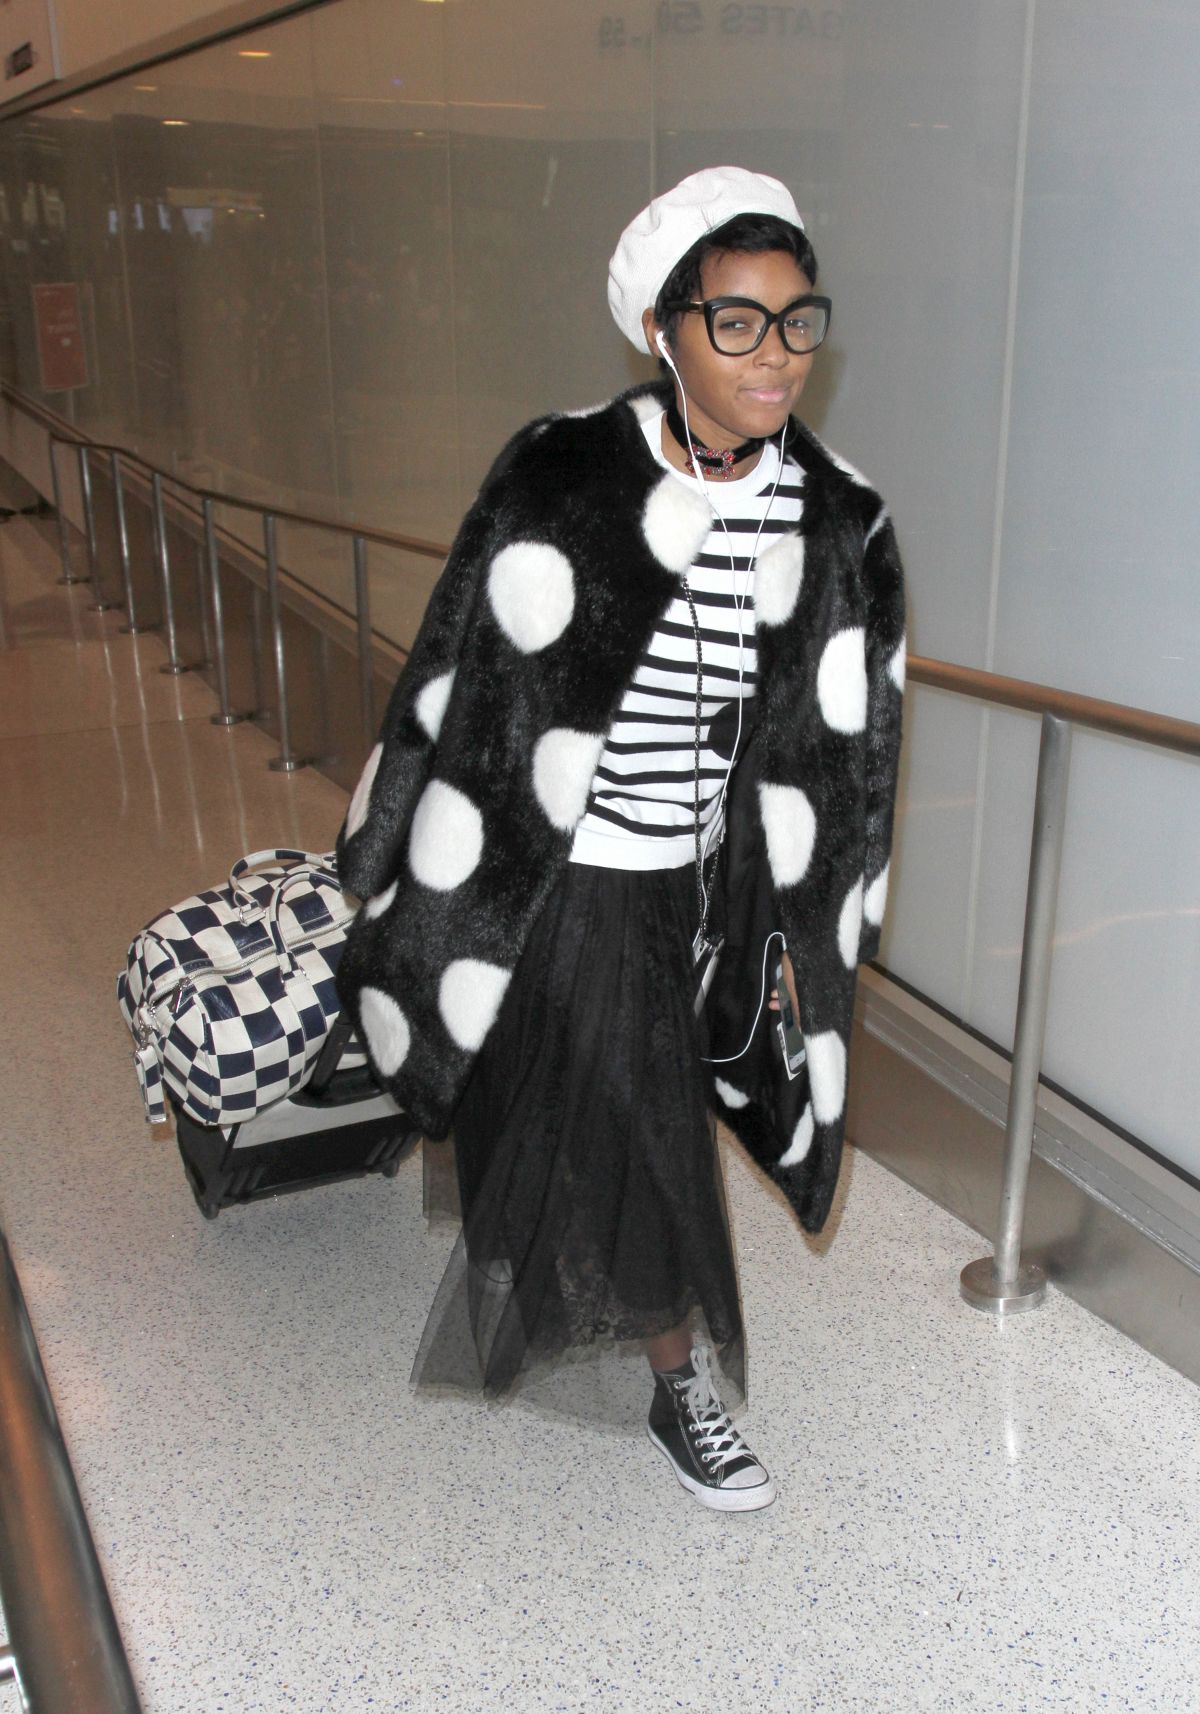 JANELLE MONAE at LAX Airport in Los Angeles 03/22/2017